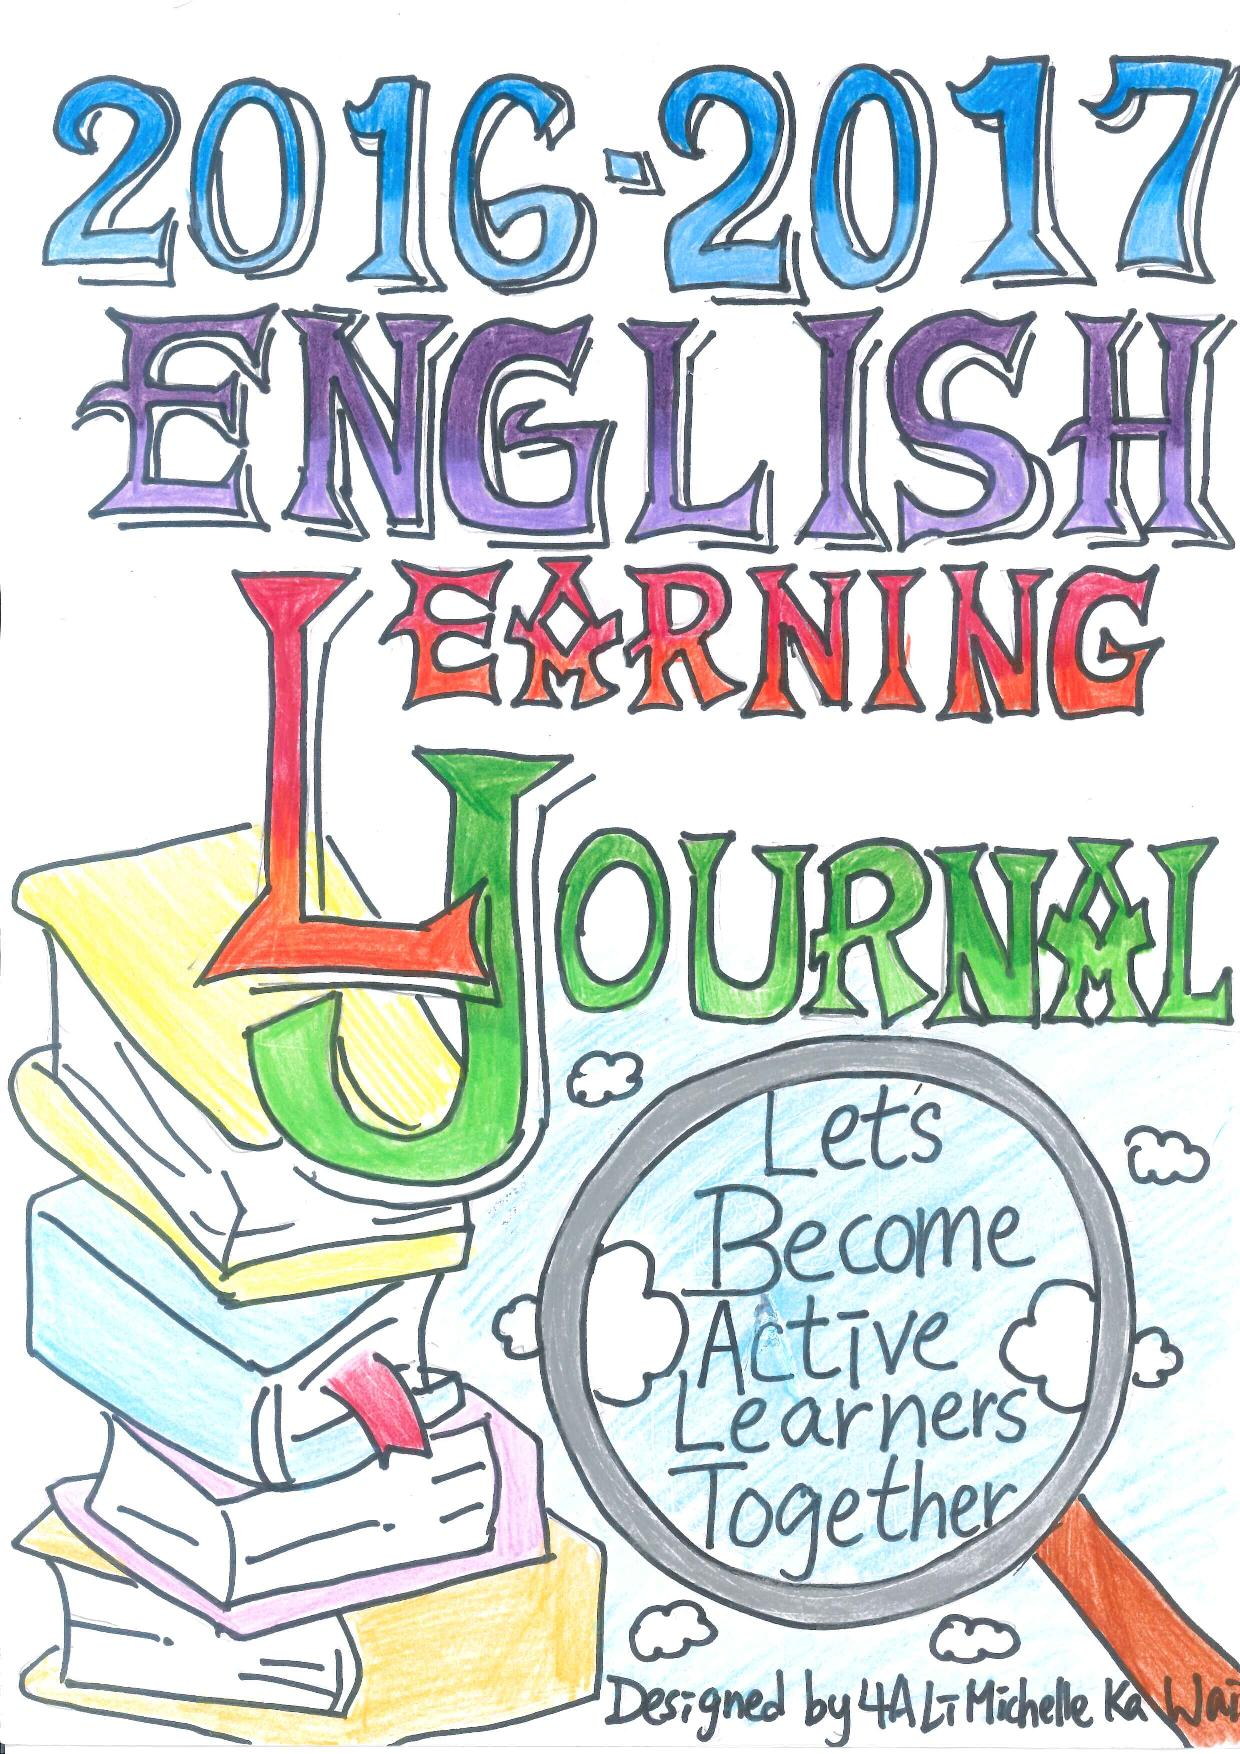 Journal clipart english journal. The learning design competition